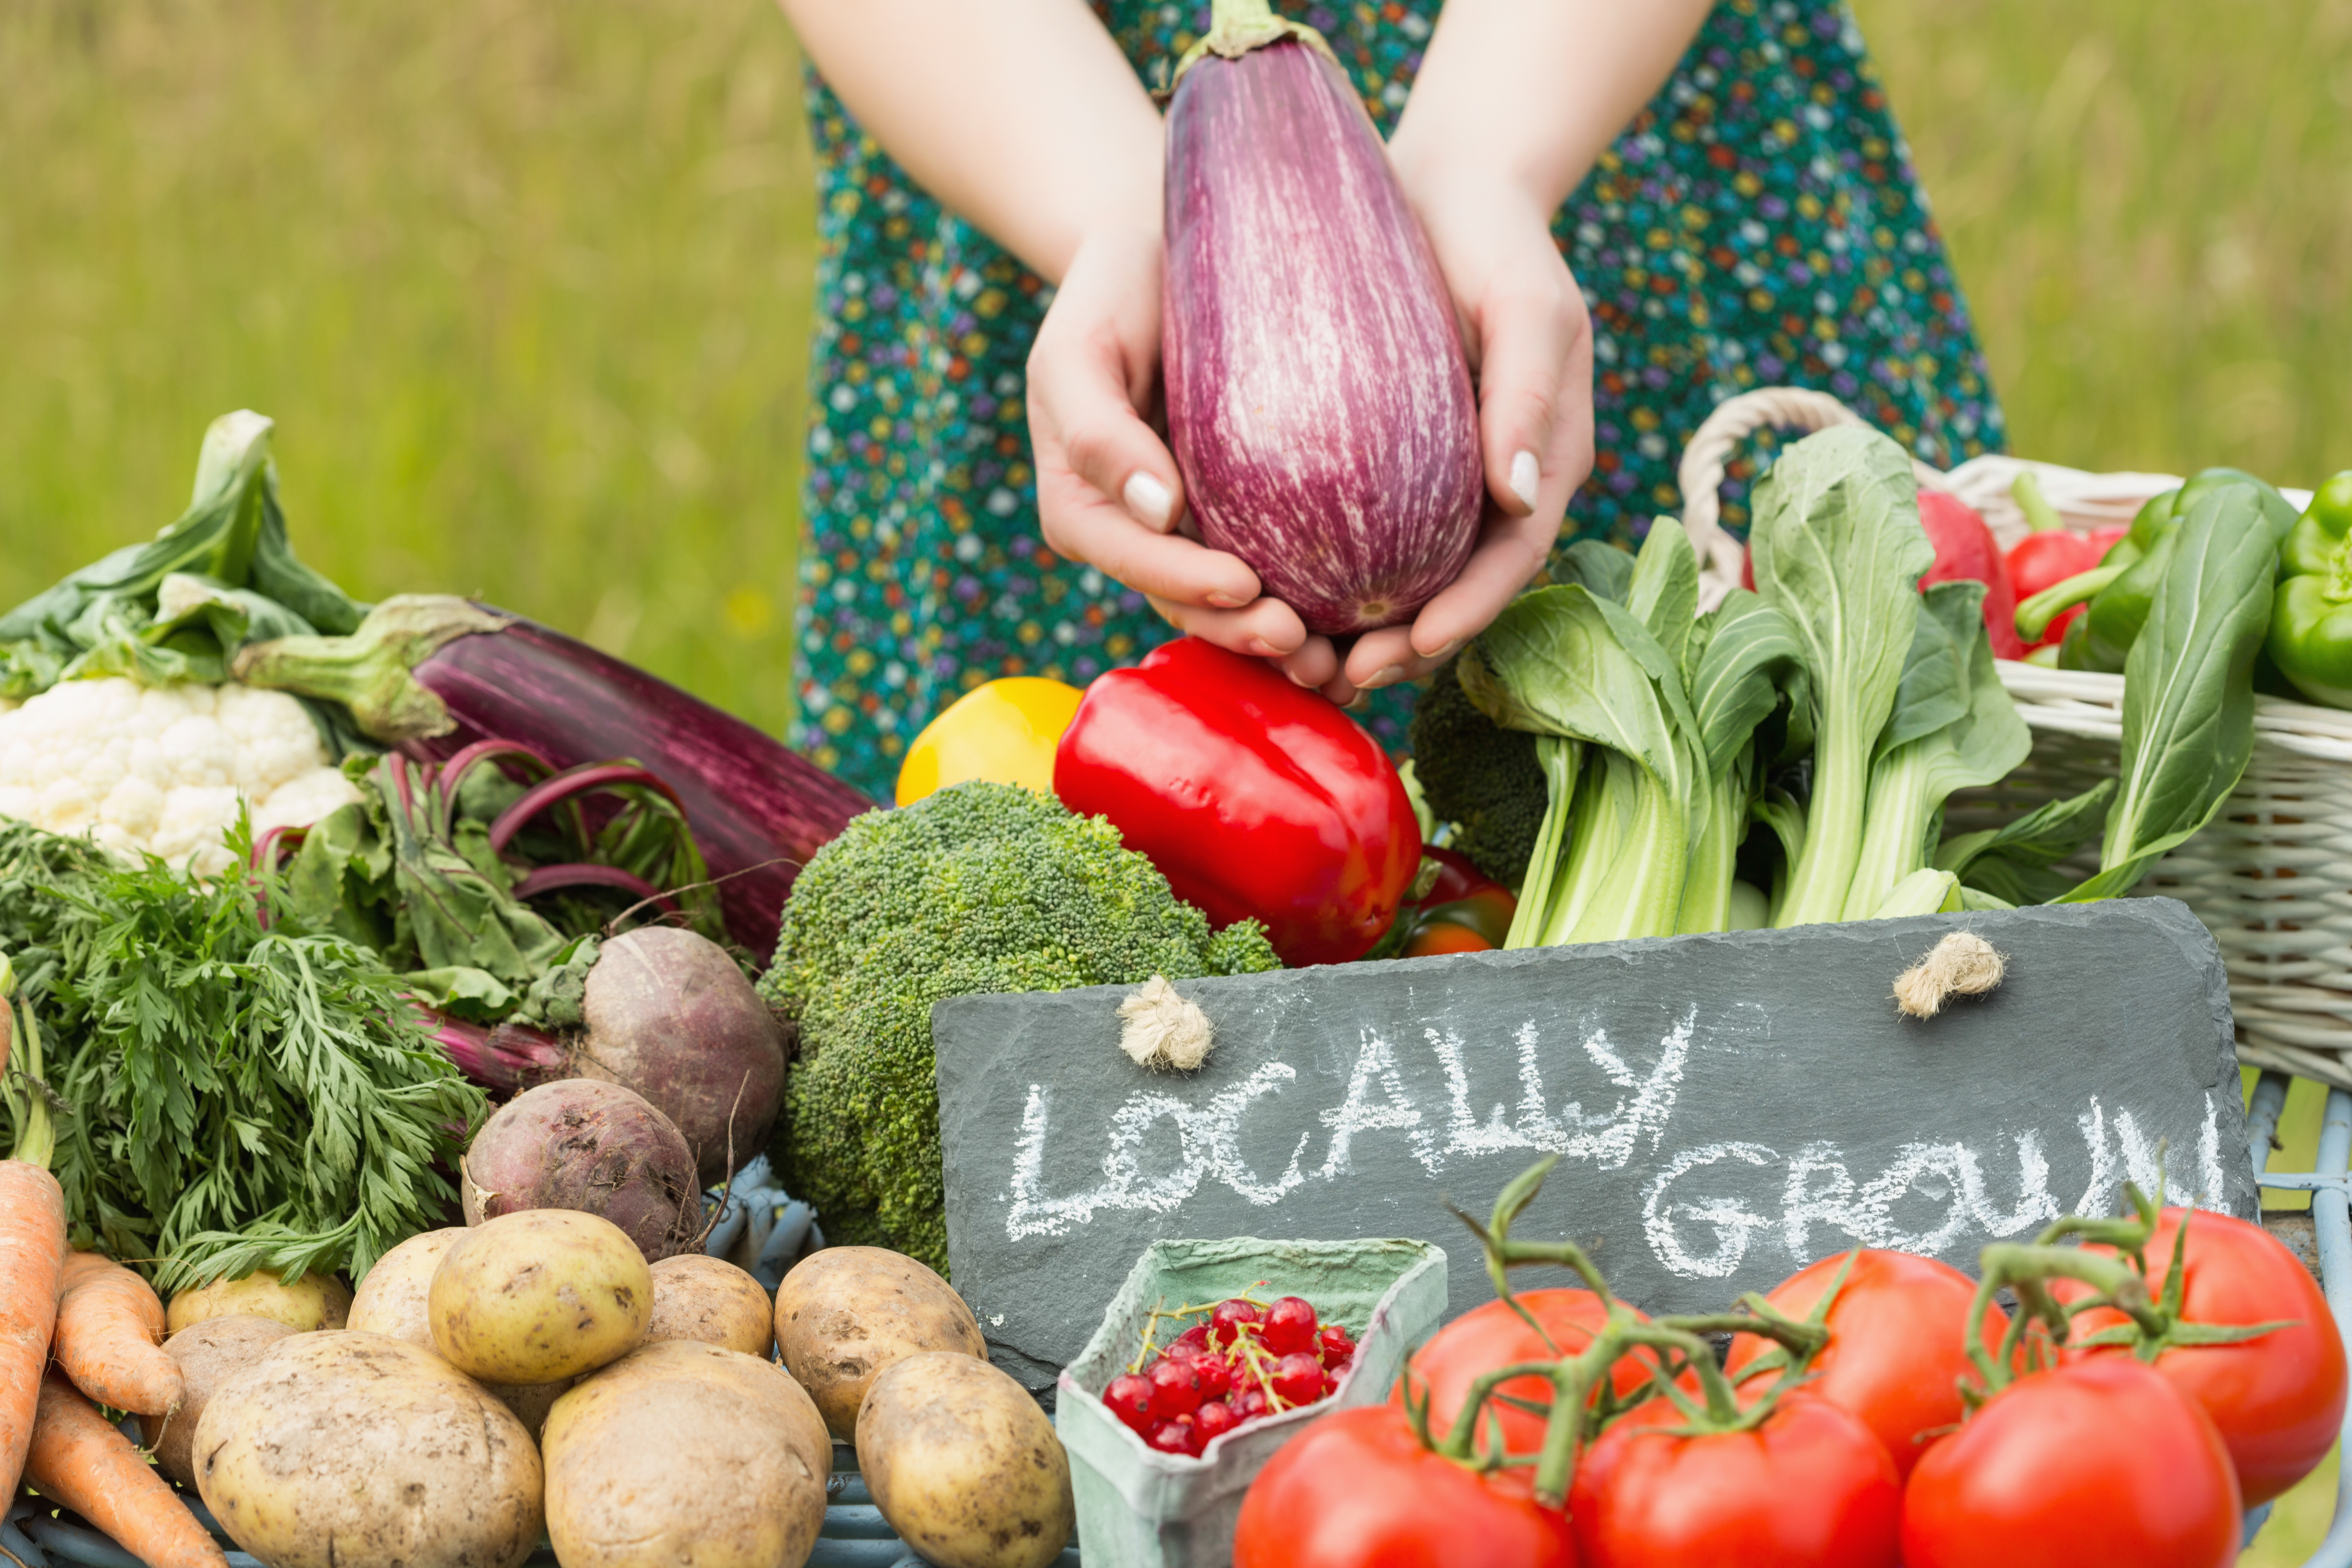 Locally Grown Vegetables: HOW TO PROMOTE A HEALTHY RELOCATION